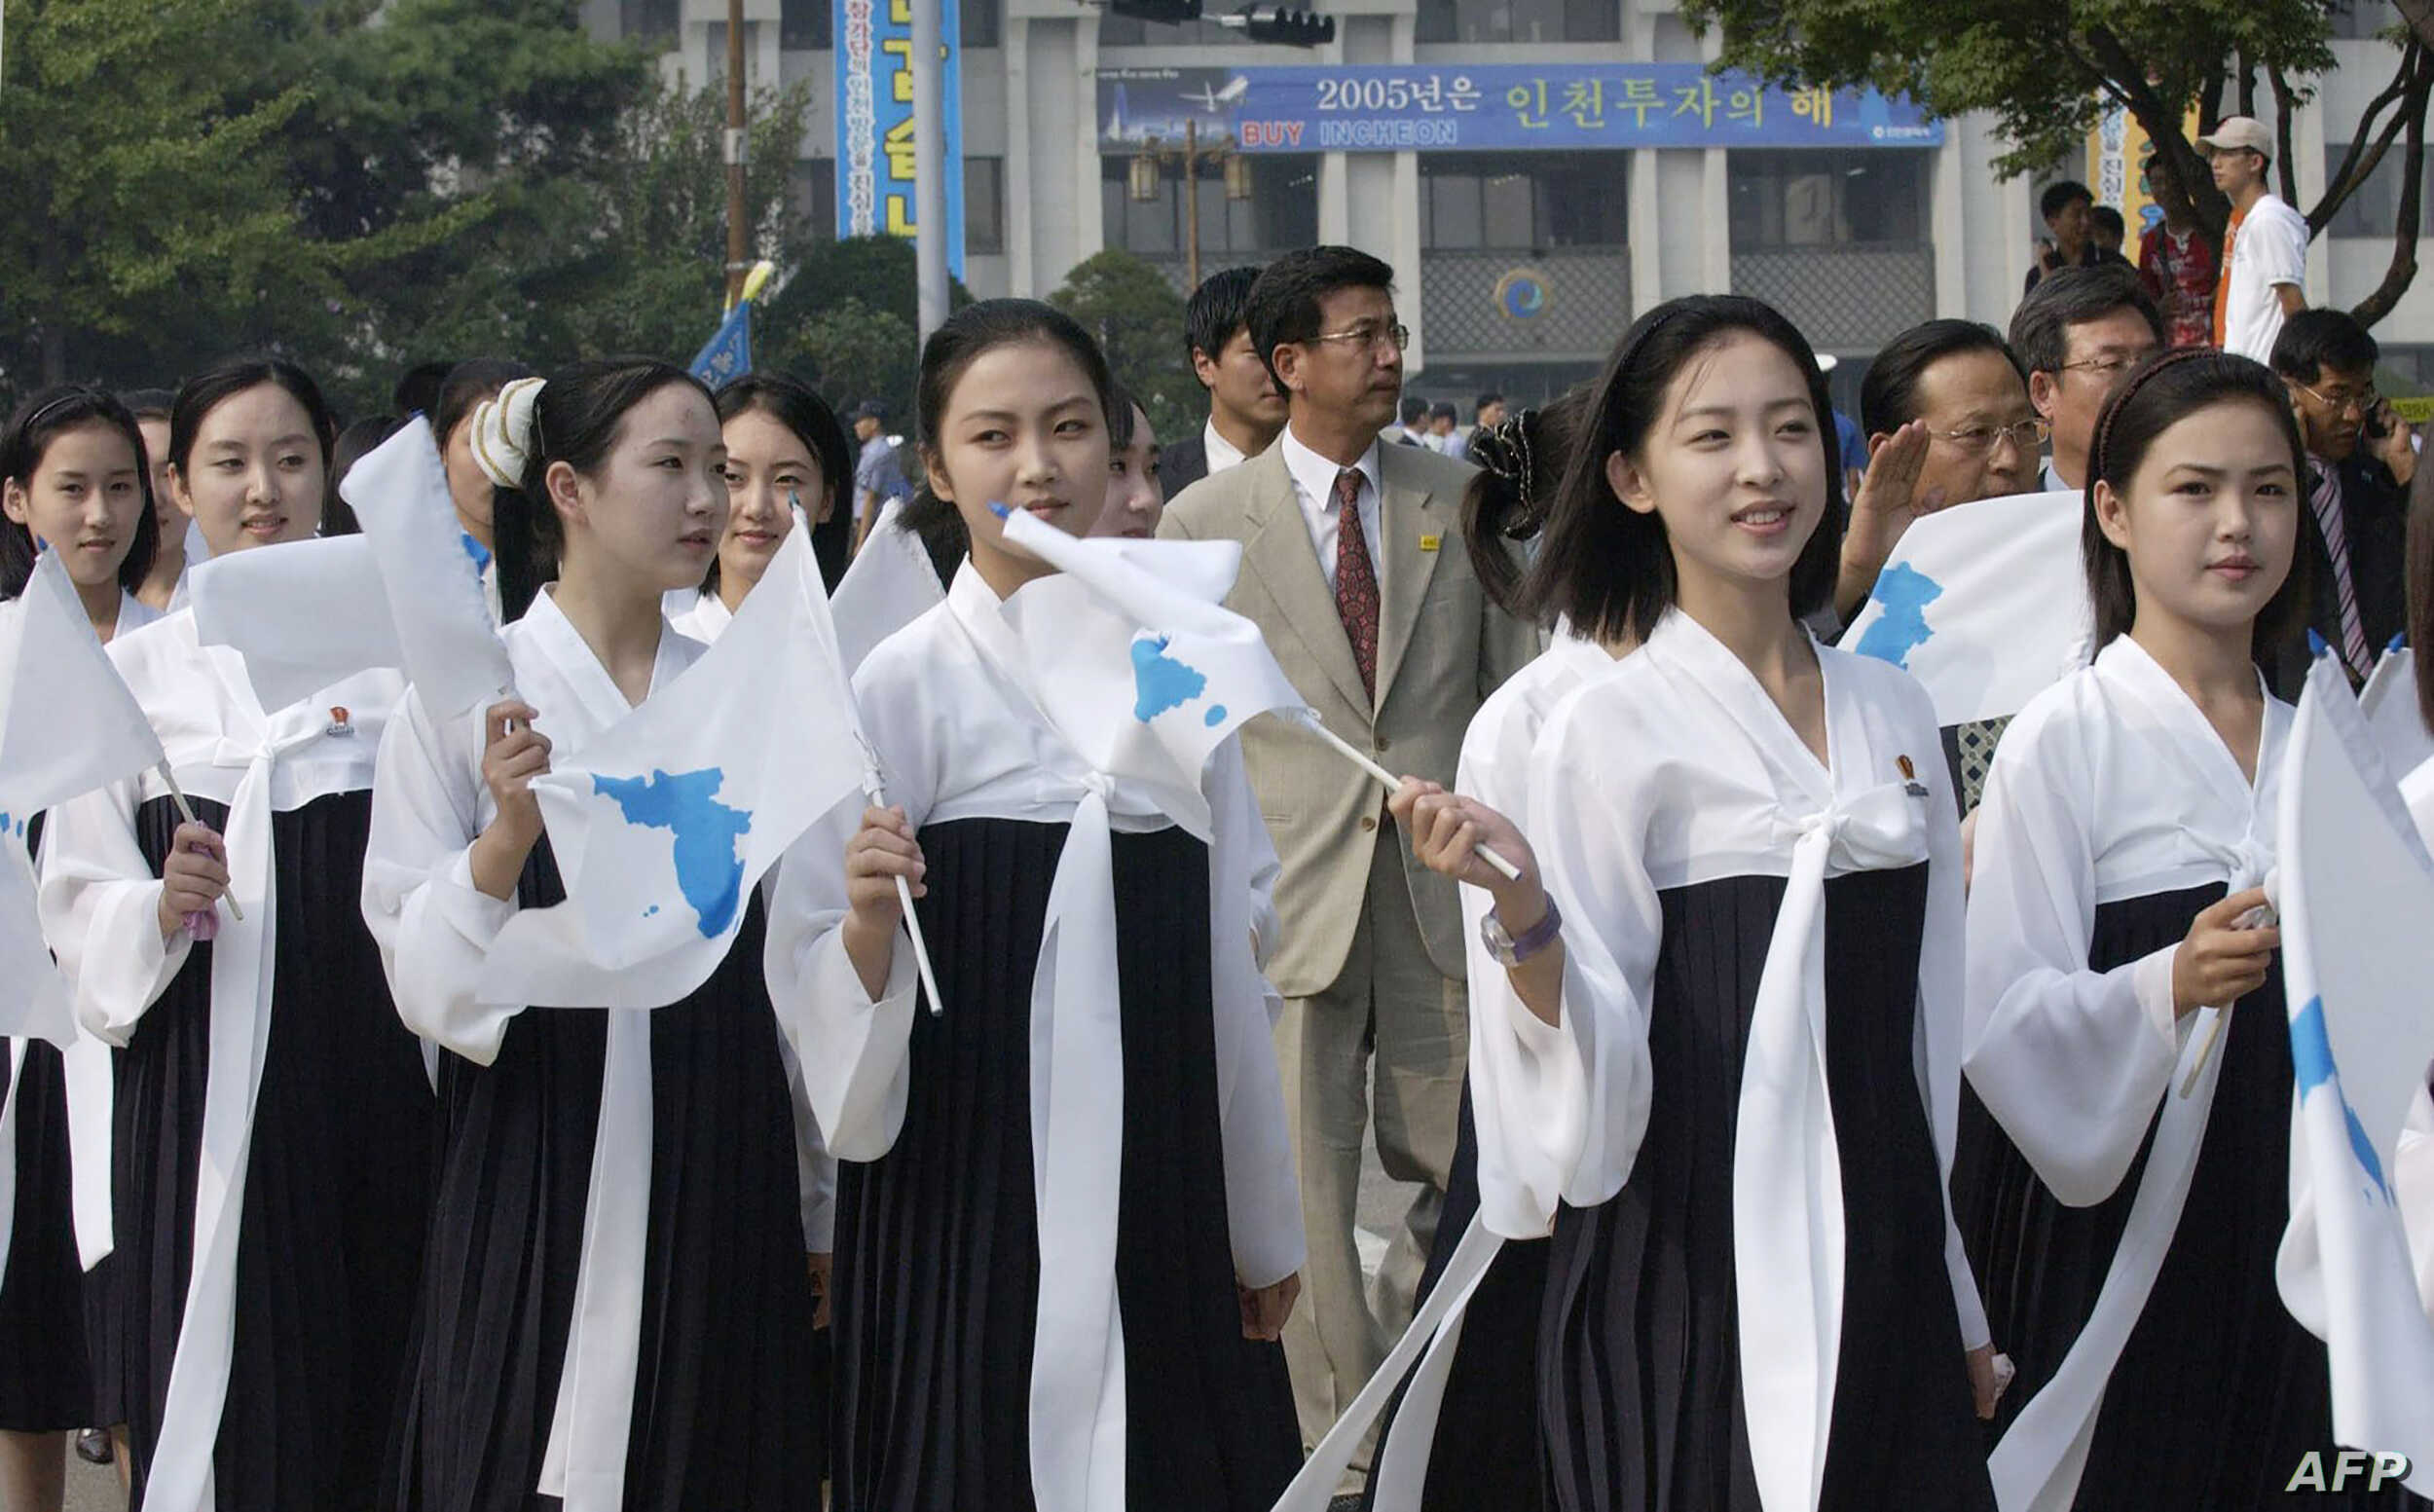 In this 2005 photo, North Korea's female cheerleaders, including a woman (right)  believed to be North Korean leader Kim Jong-Un's current wife Ri Sol-Ju, attend the 2005 Asian Athletics Championships in Incheon.